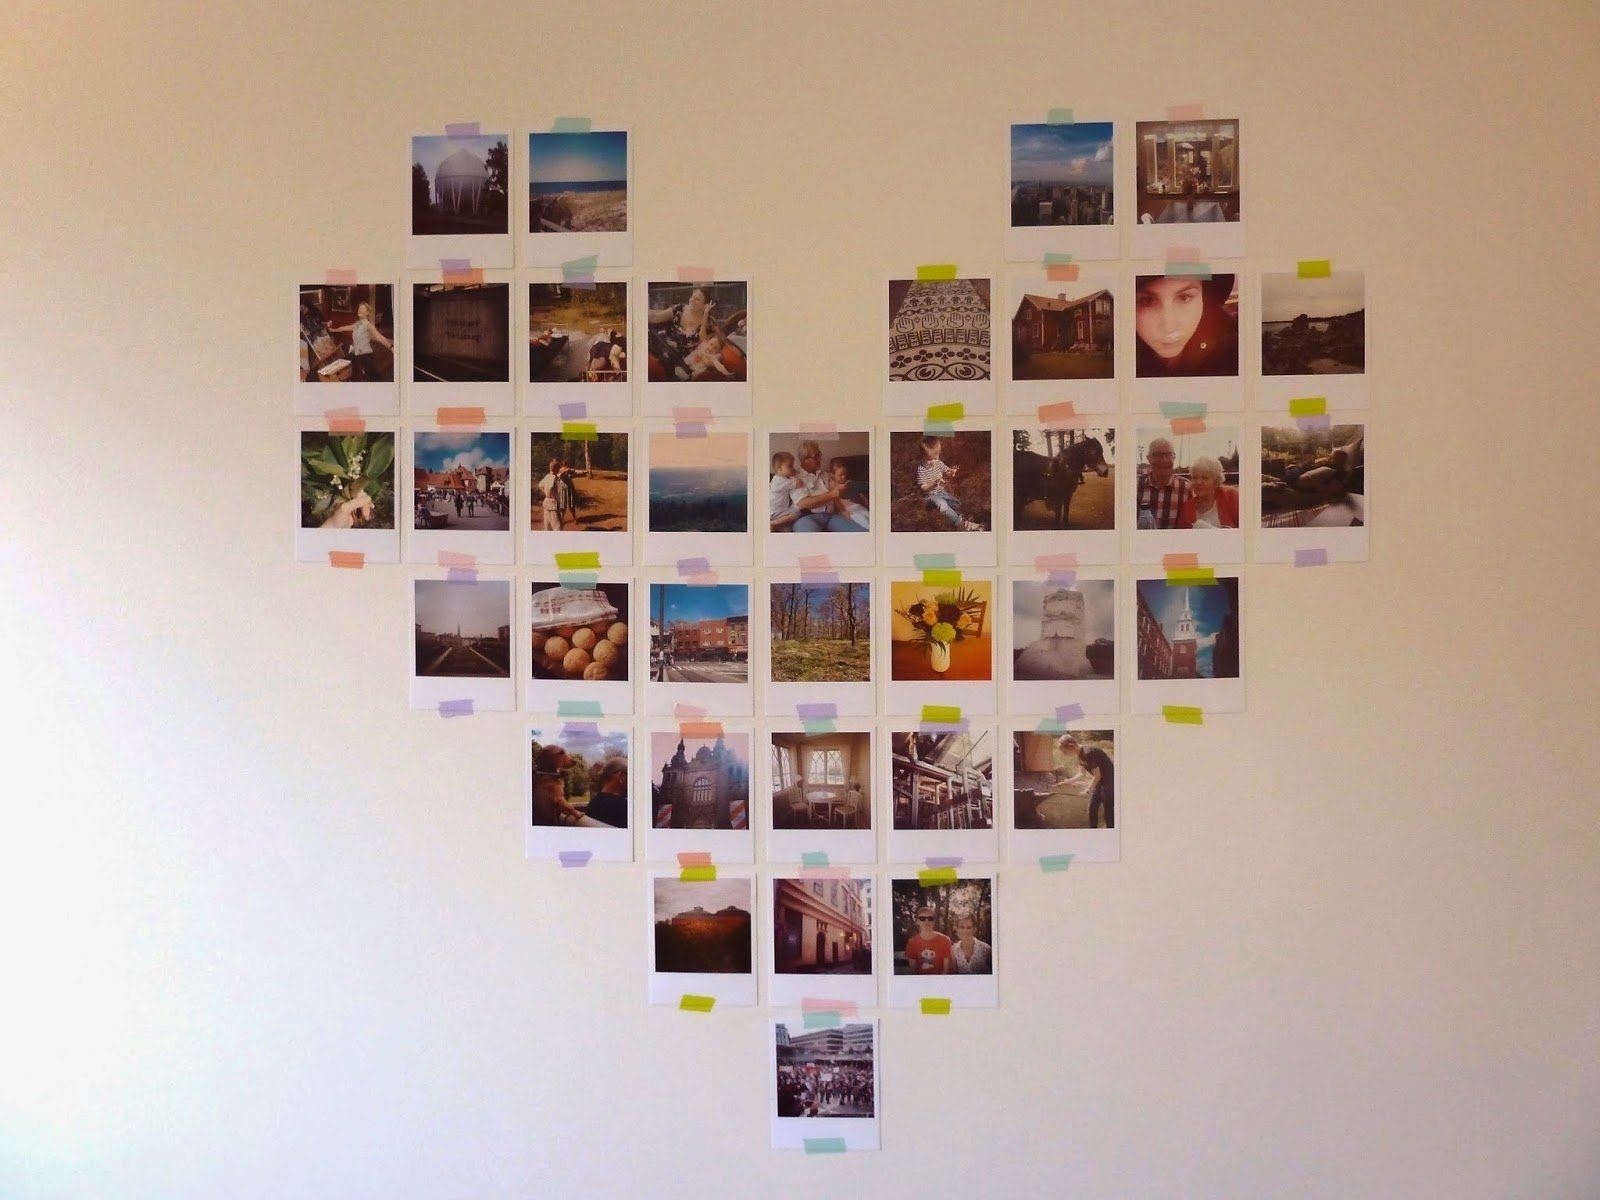 10 Trendy Photo Collage On Wall Ideas picture collage on wall ideas the stunning of wall collage ideas 2020